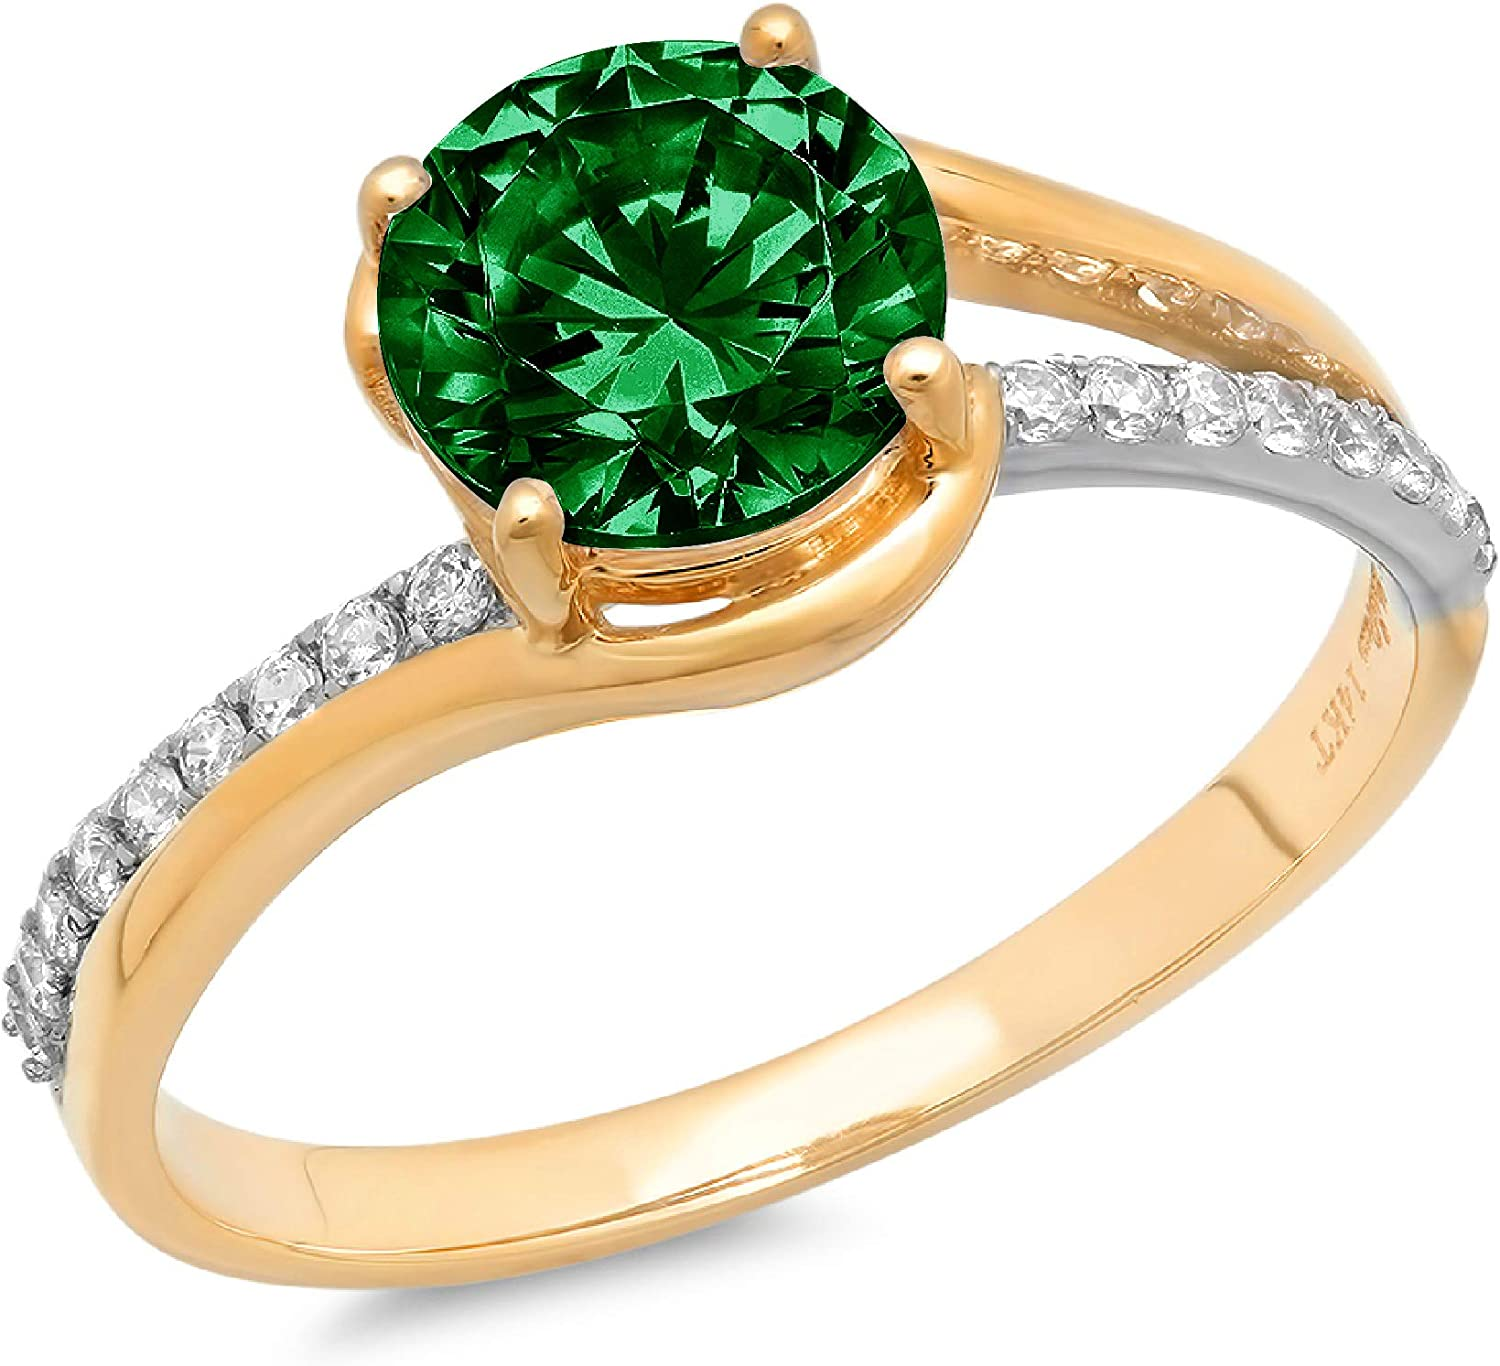 Indefinitely 1.9ct Excellence Brilliant Round Cut Solitaire Simulated Green CZ Flawless